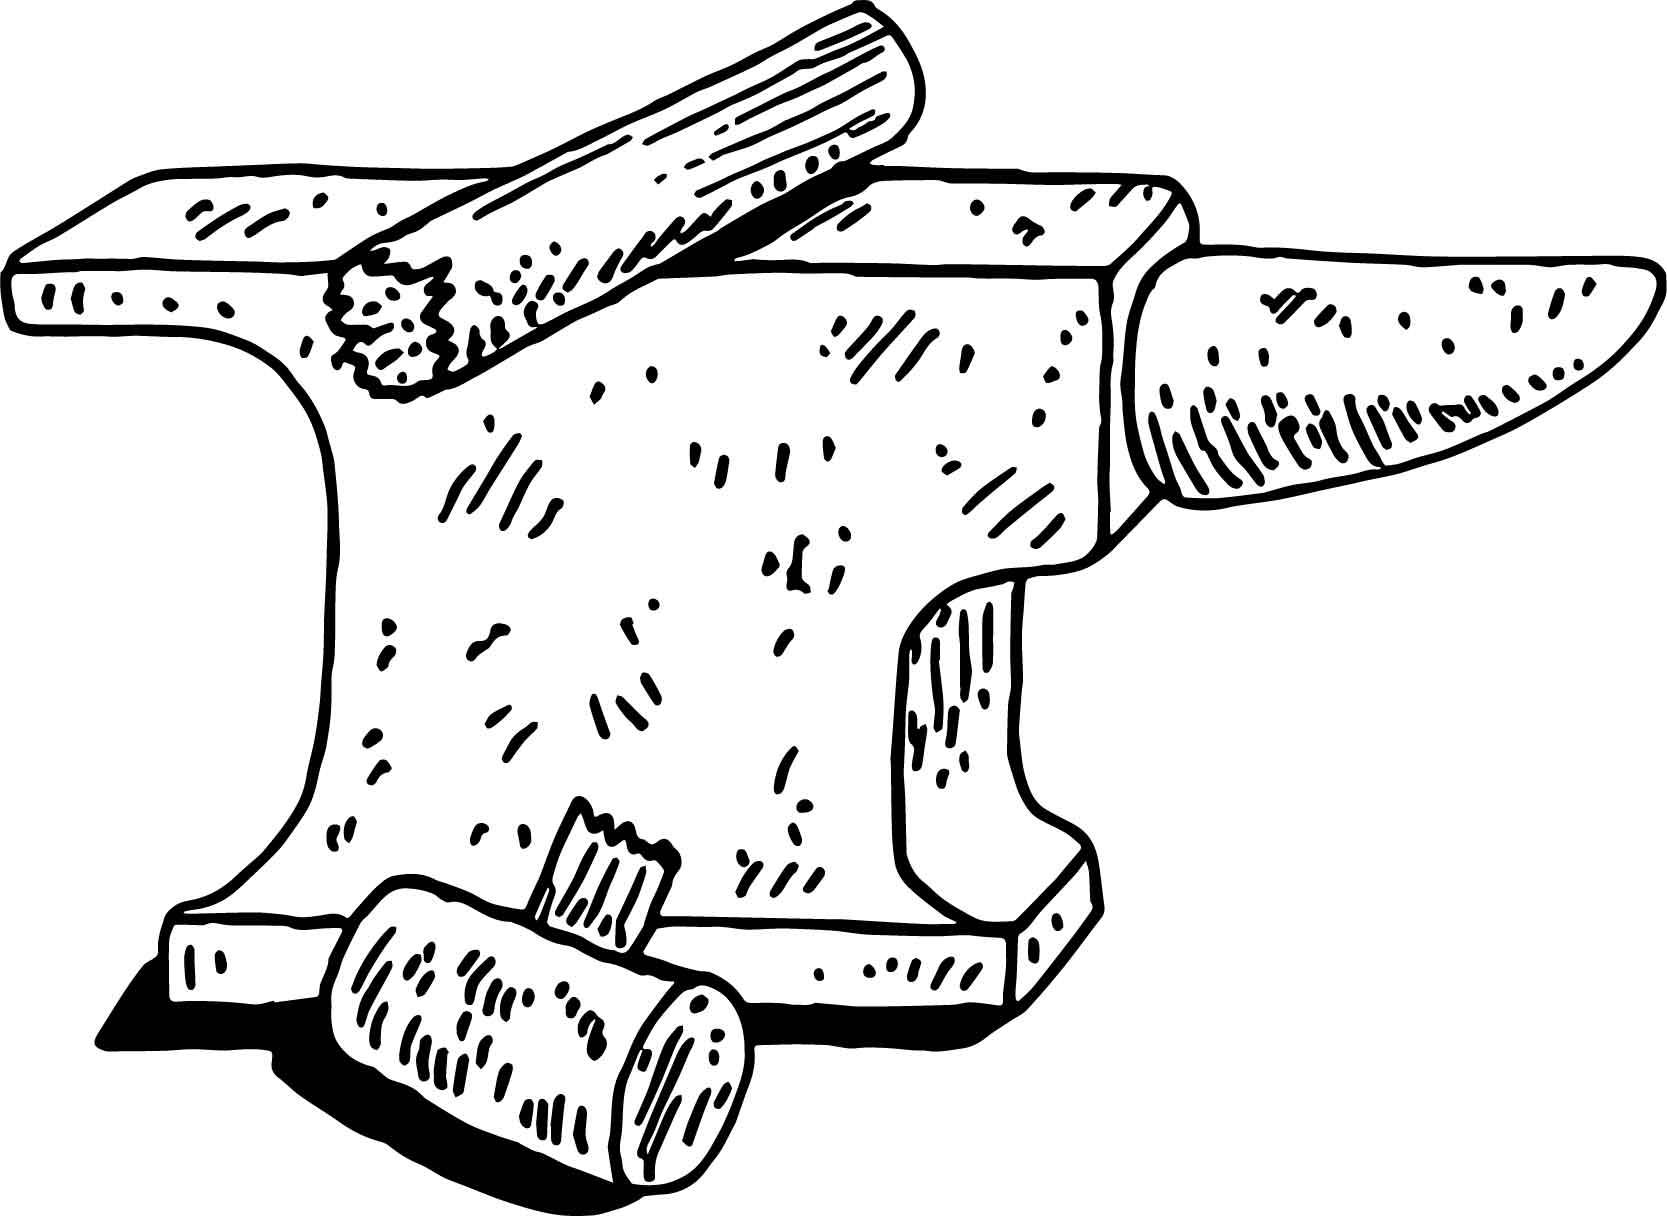 Anvil Carpenter Coloring Page